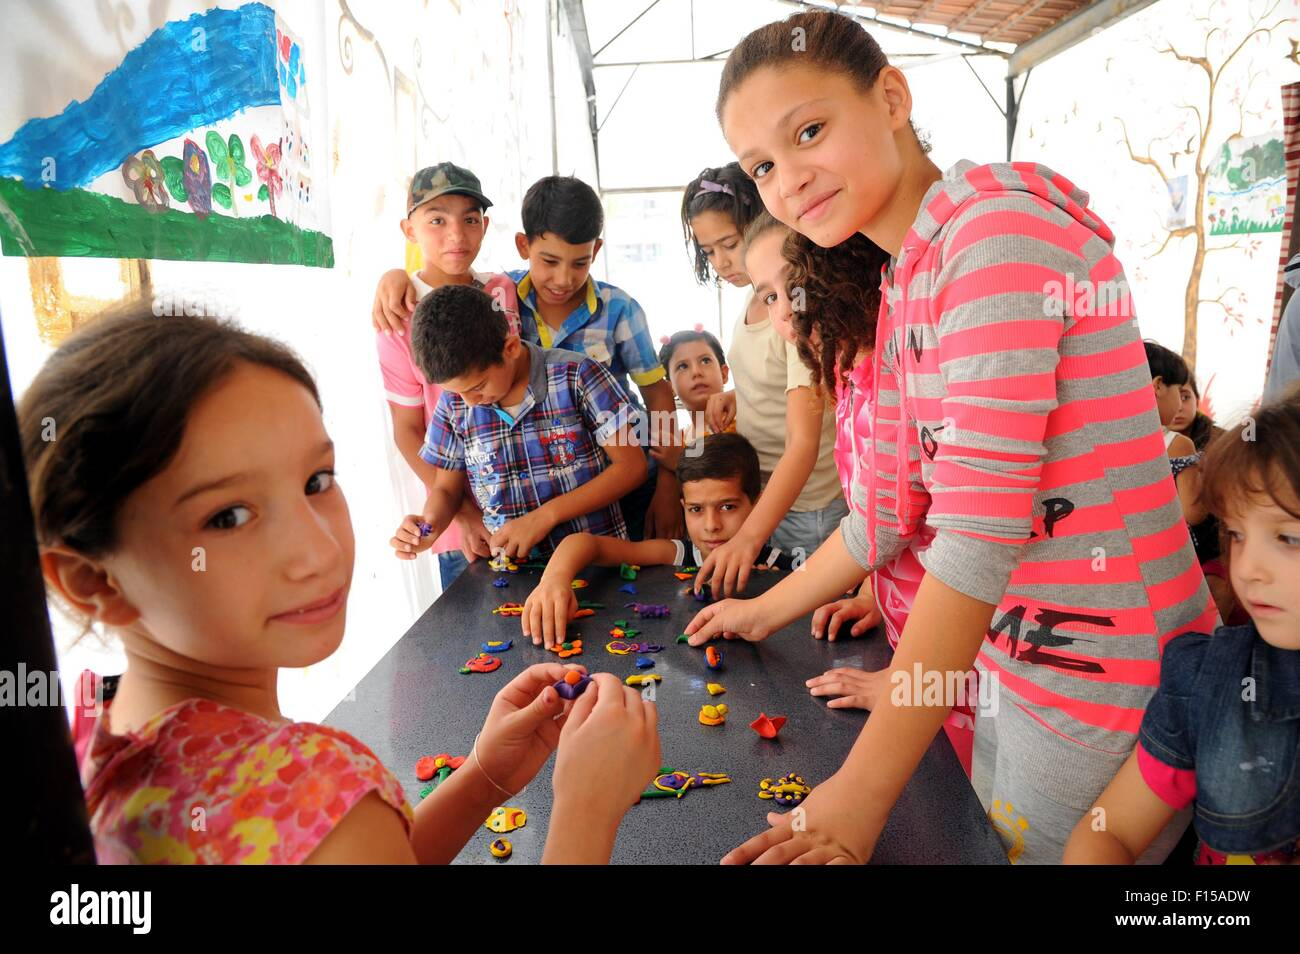 Damascus. 27th Aug, 2015. Syrian children play with plasticene during an extracurricular activity at a makeshift Stock Photo